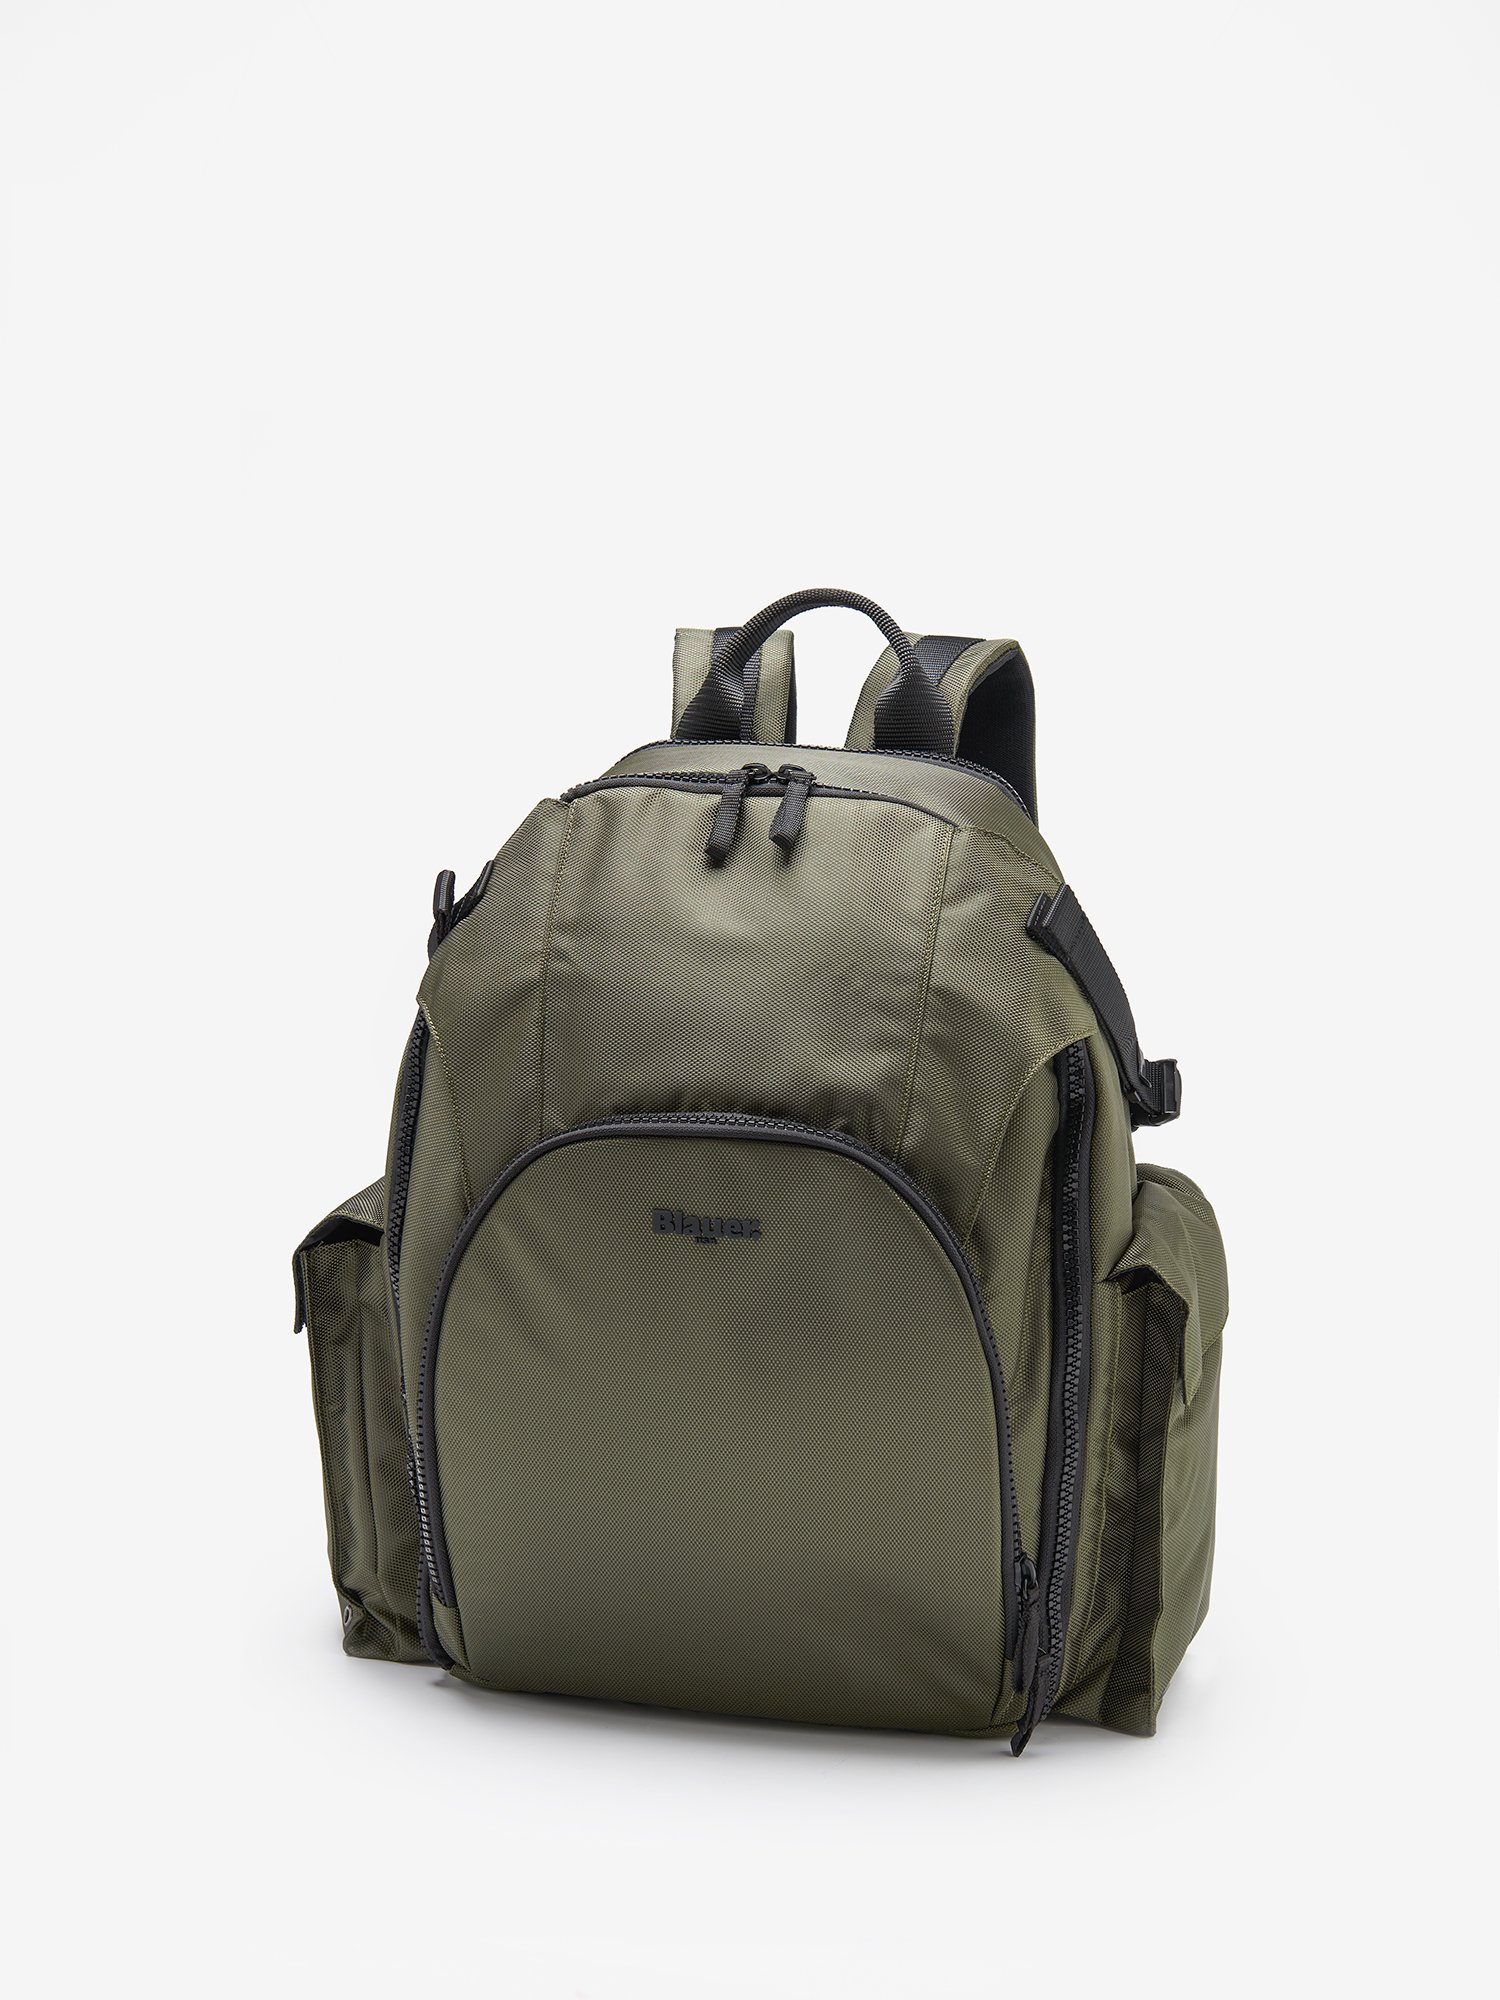 TRAVEL BACKPACK MULTI POCKETS - Blauer